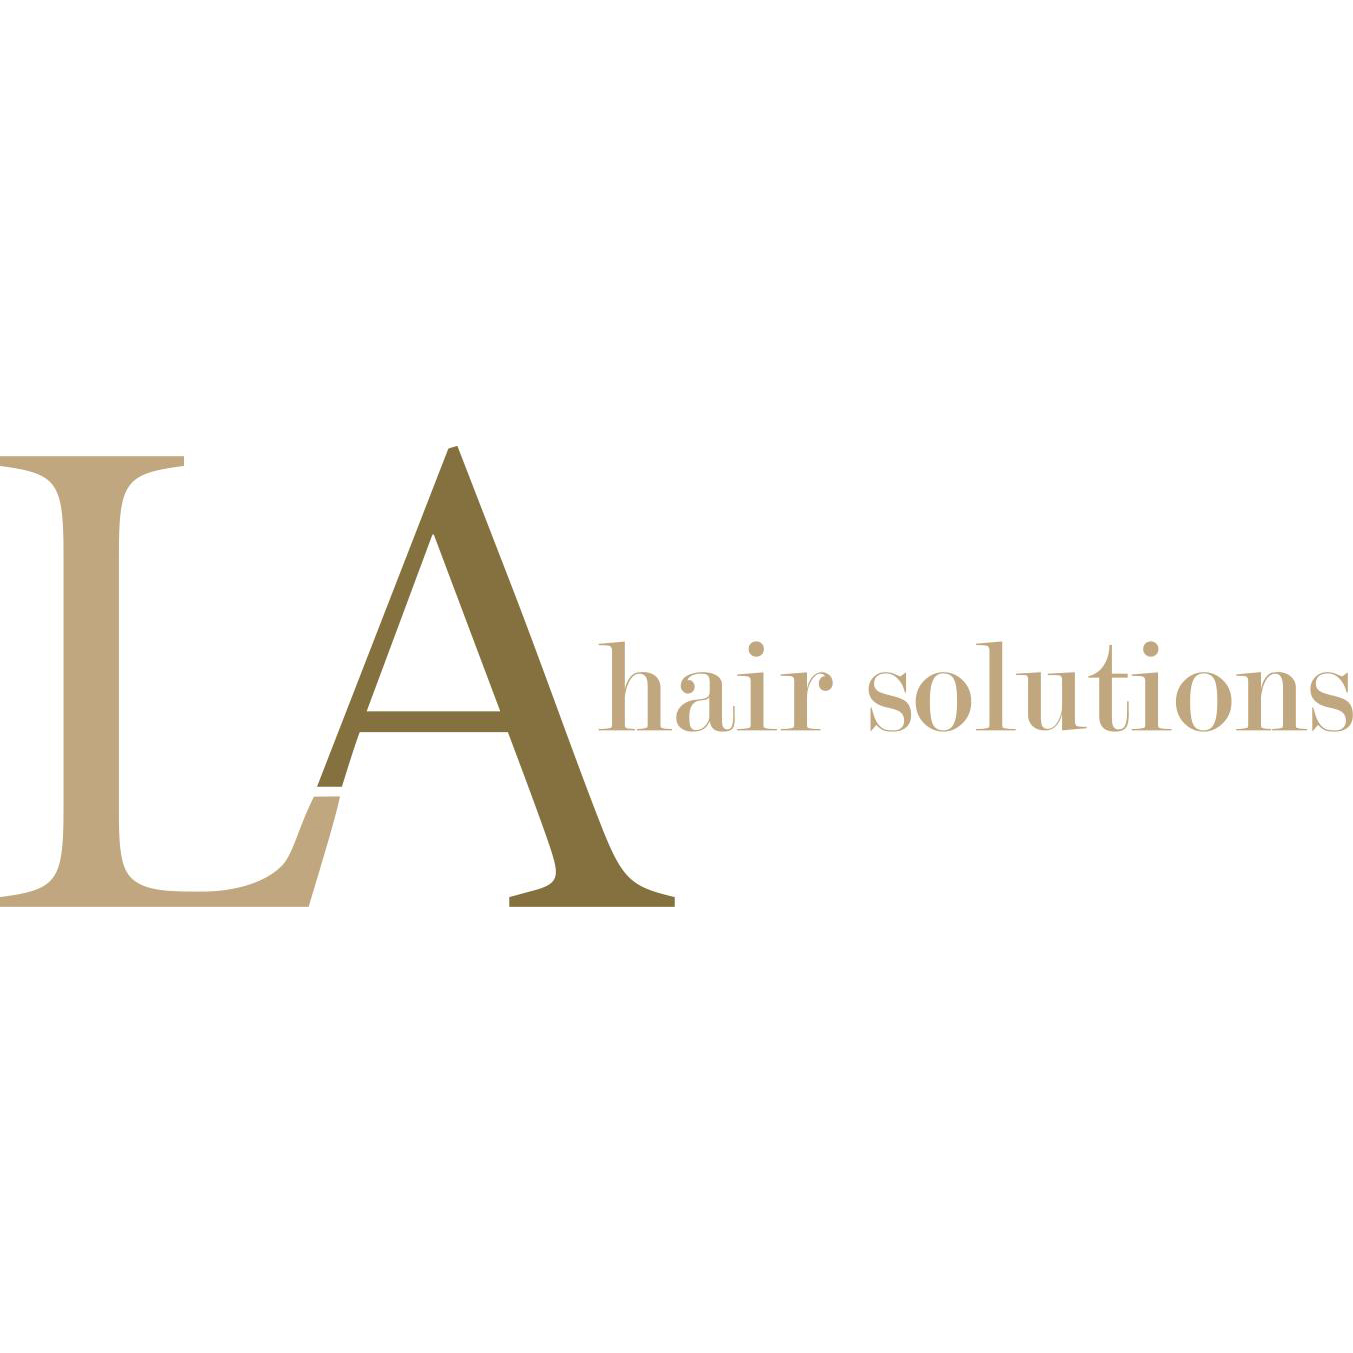 image of LA Hair Solutions